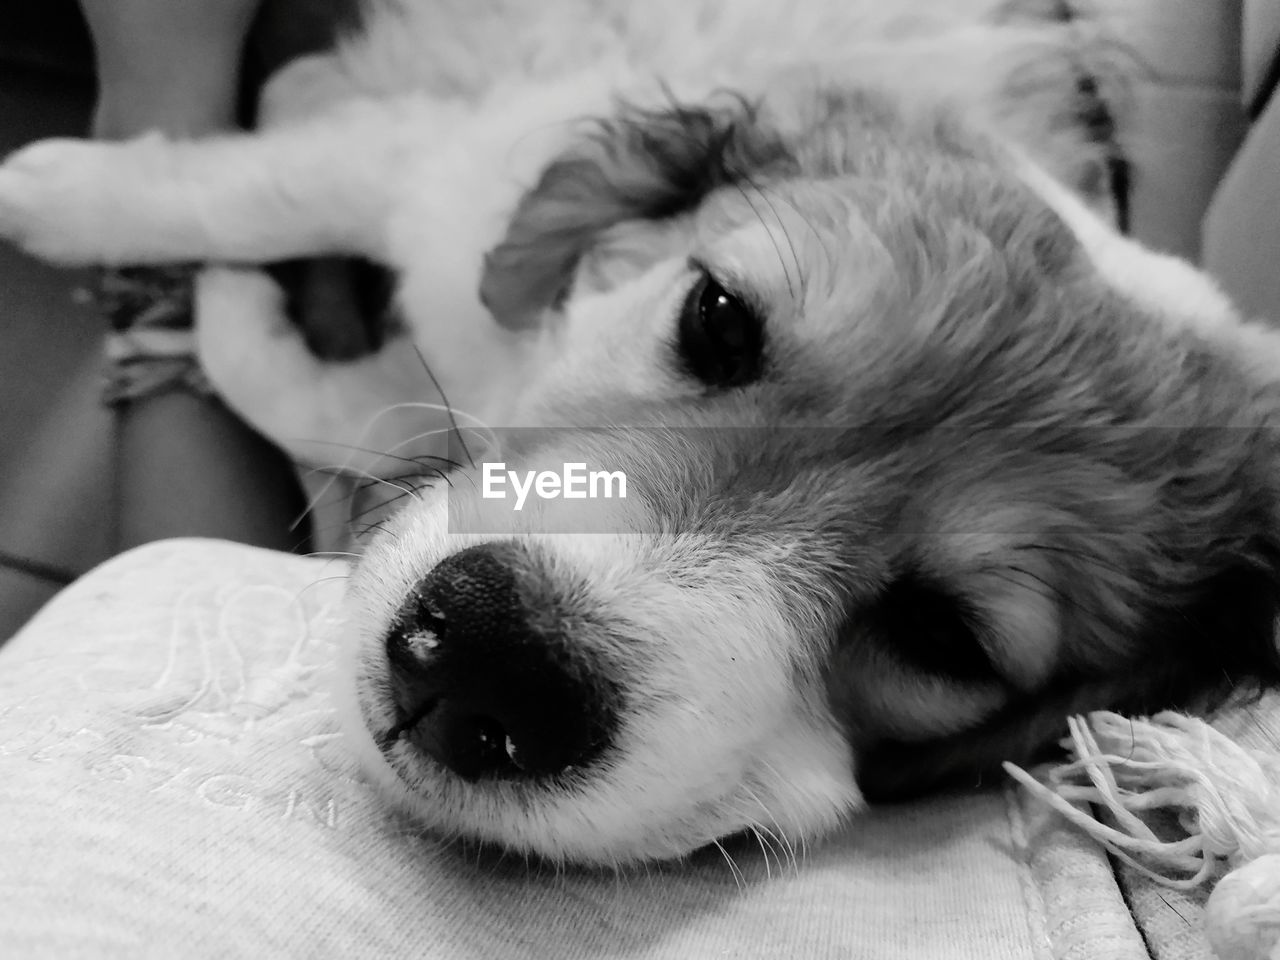 one animal, pets, domestic, animal themes, dog, domestic animals, canine, vertebrate, animal, relaxation, mammal, close-up, indoors, animal body part, looking at camera, focus on foreground, resting, portrait, lying down, furniture, animal head, whisker